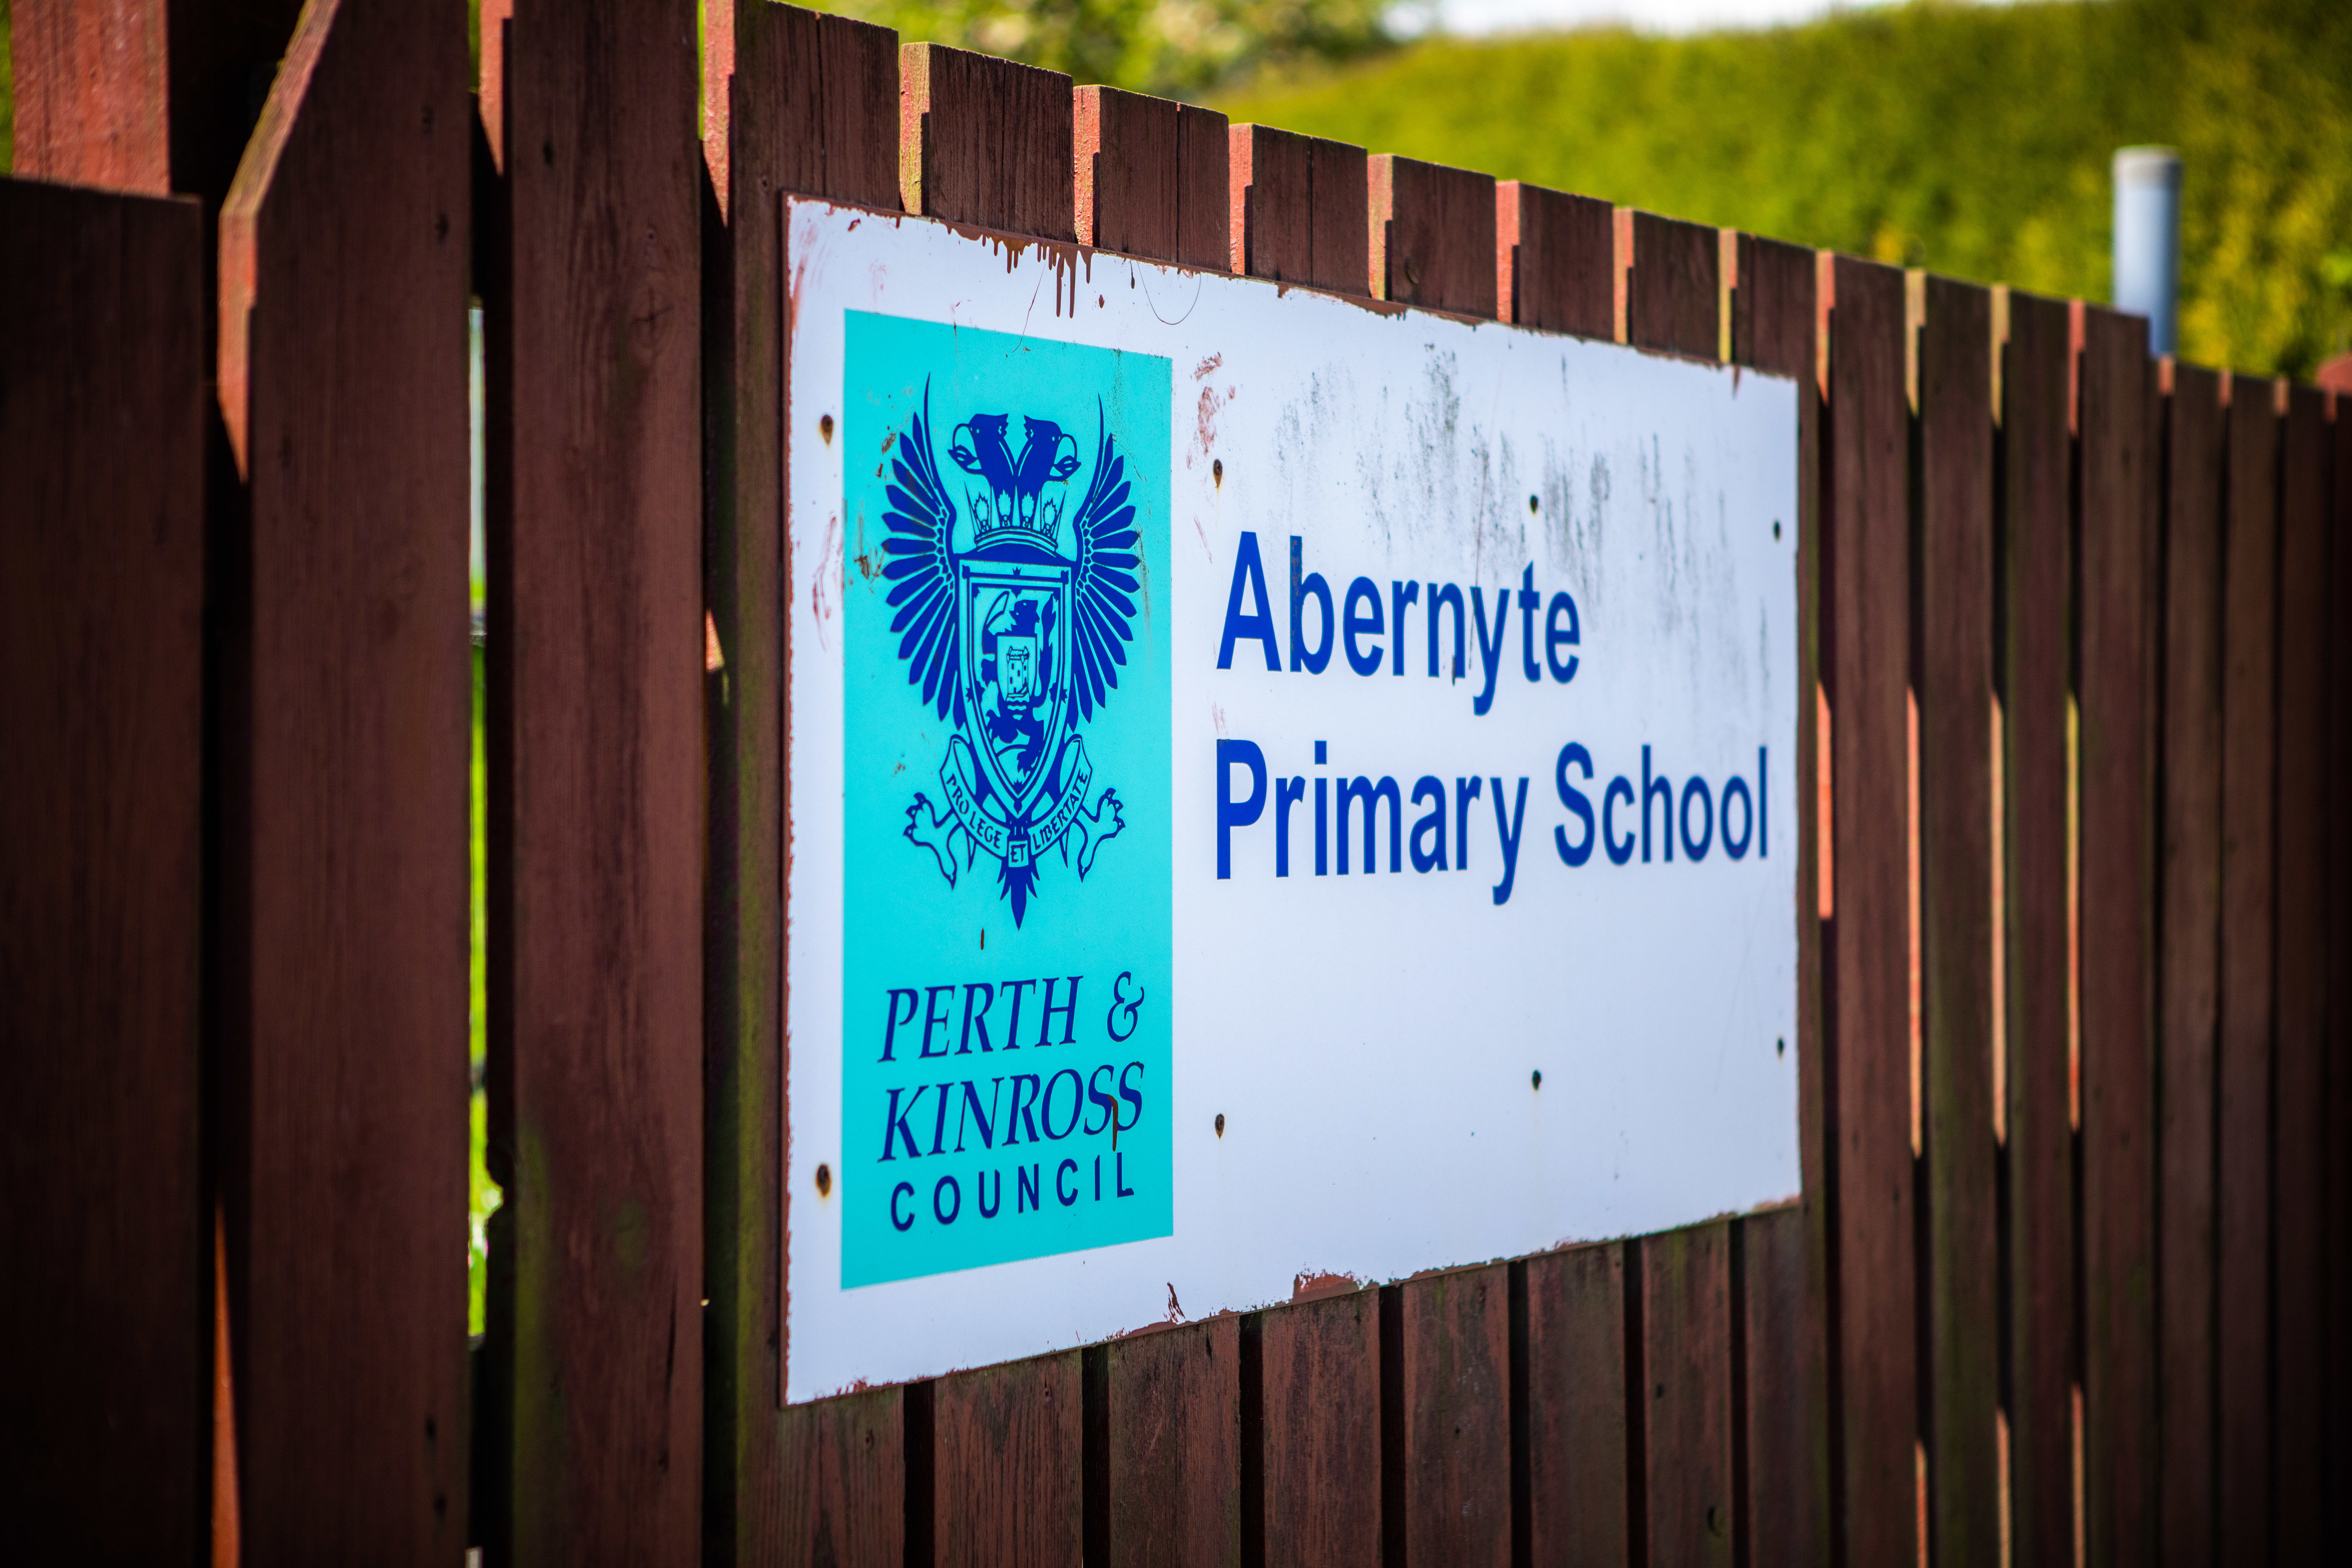 Abernyte Primary is the fifth school to close under the current administration.